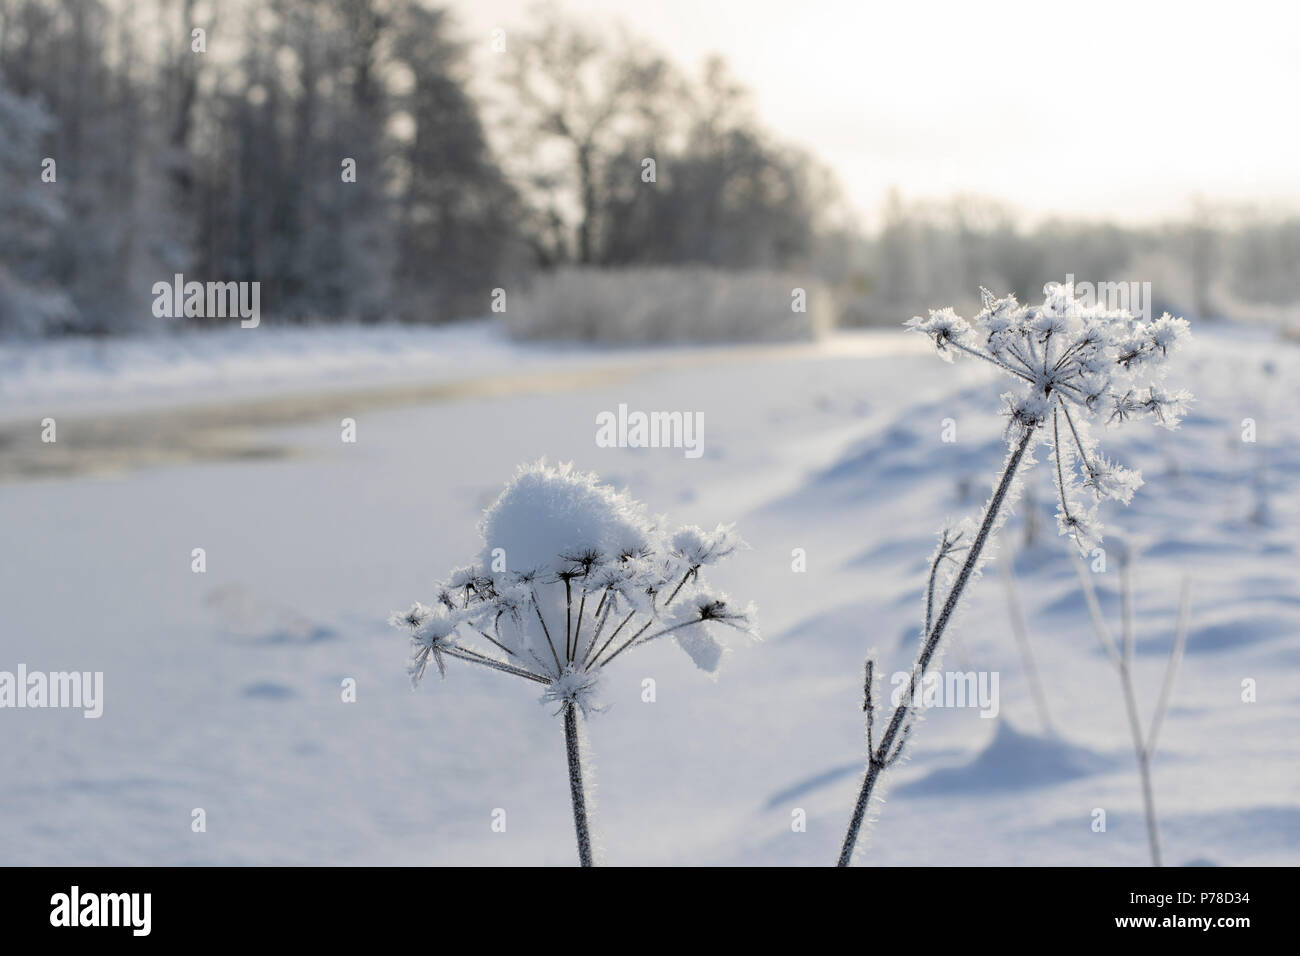 Frozen last year's flowers. - Stock Image